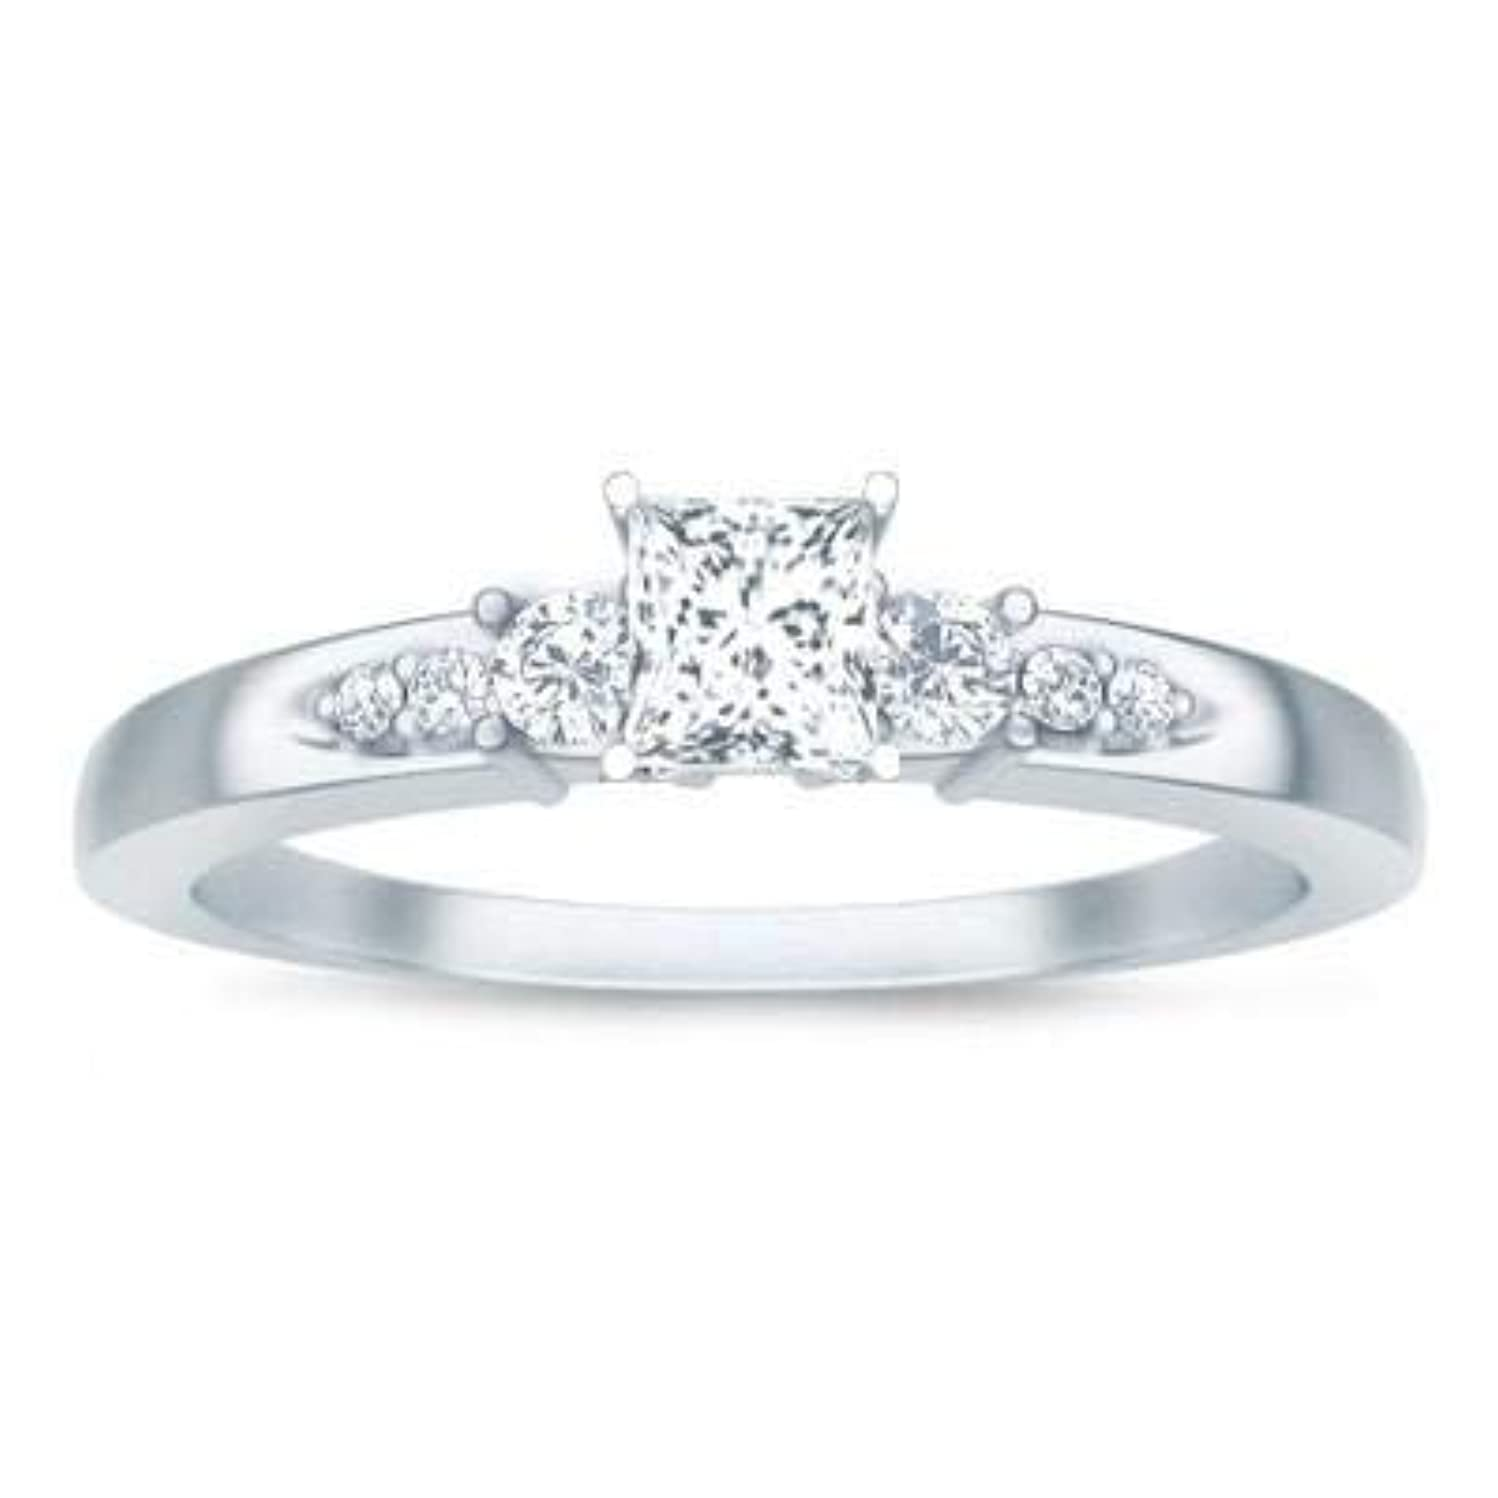 Cheap Moissanite Engagement Ring 1.25 Carat with Real Diamonds with 18k Gold Plating